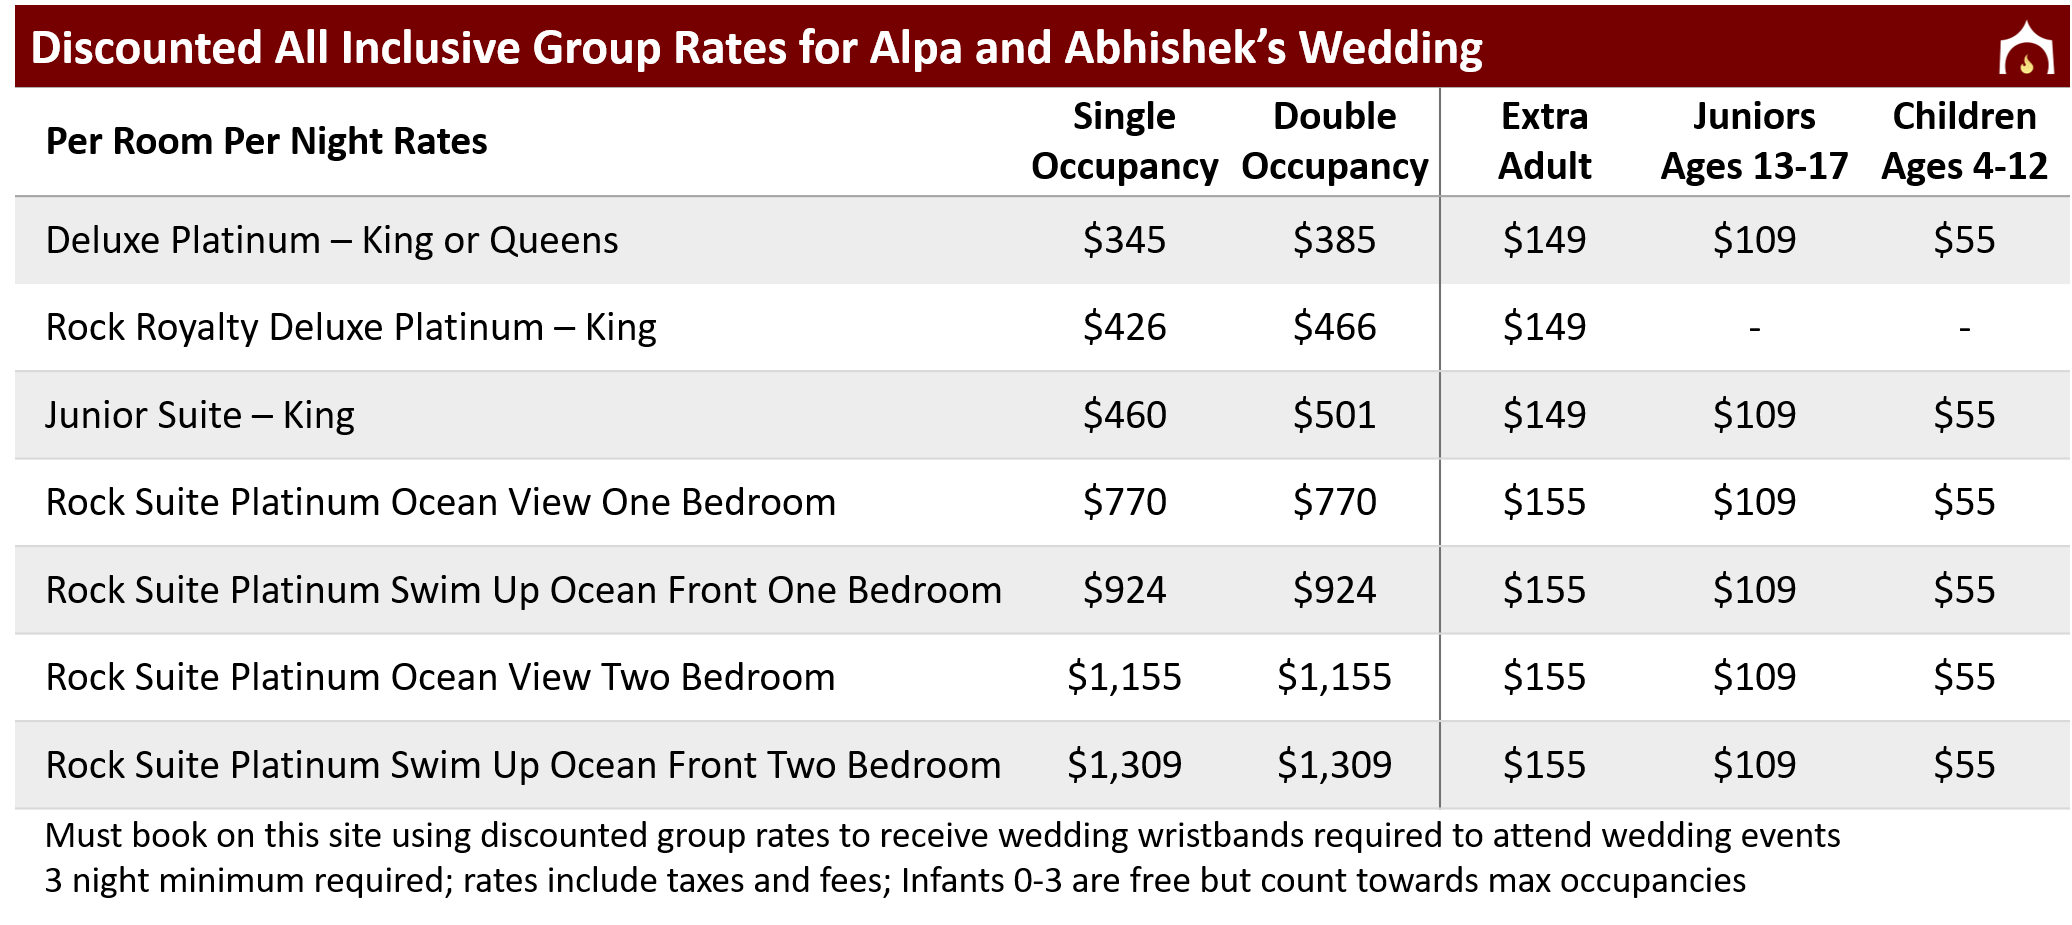 Discounted Group Rates for Alpa and Abhishek.png